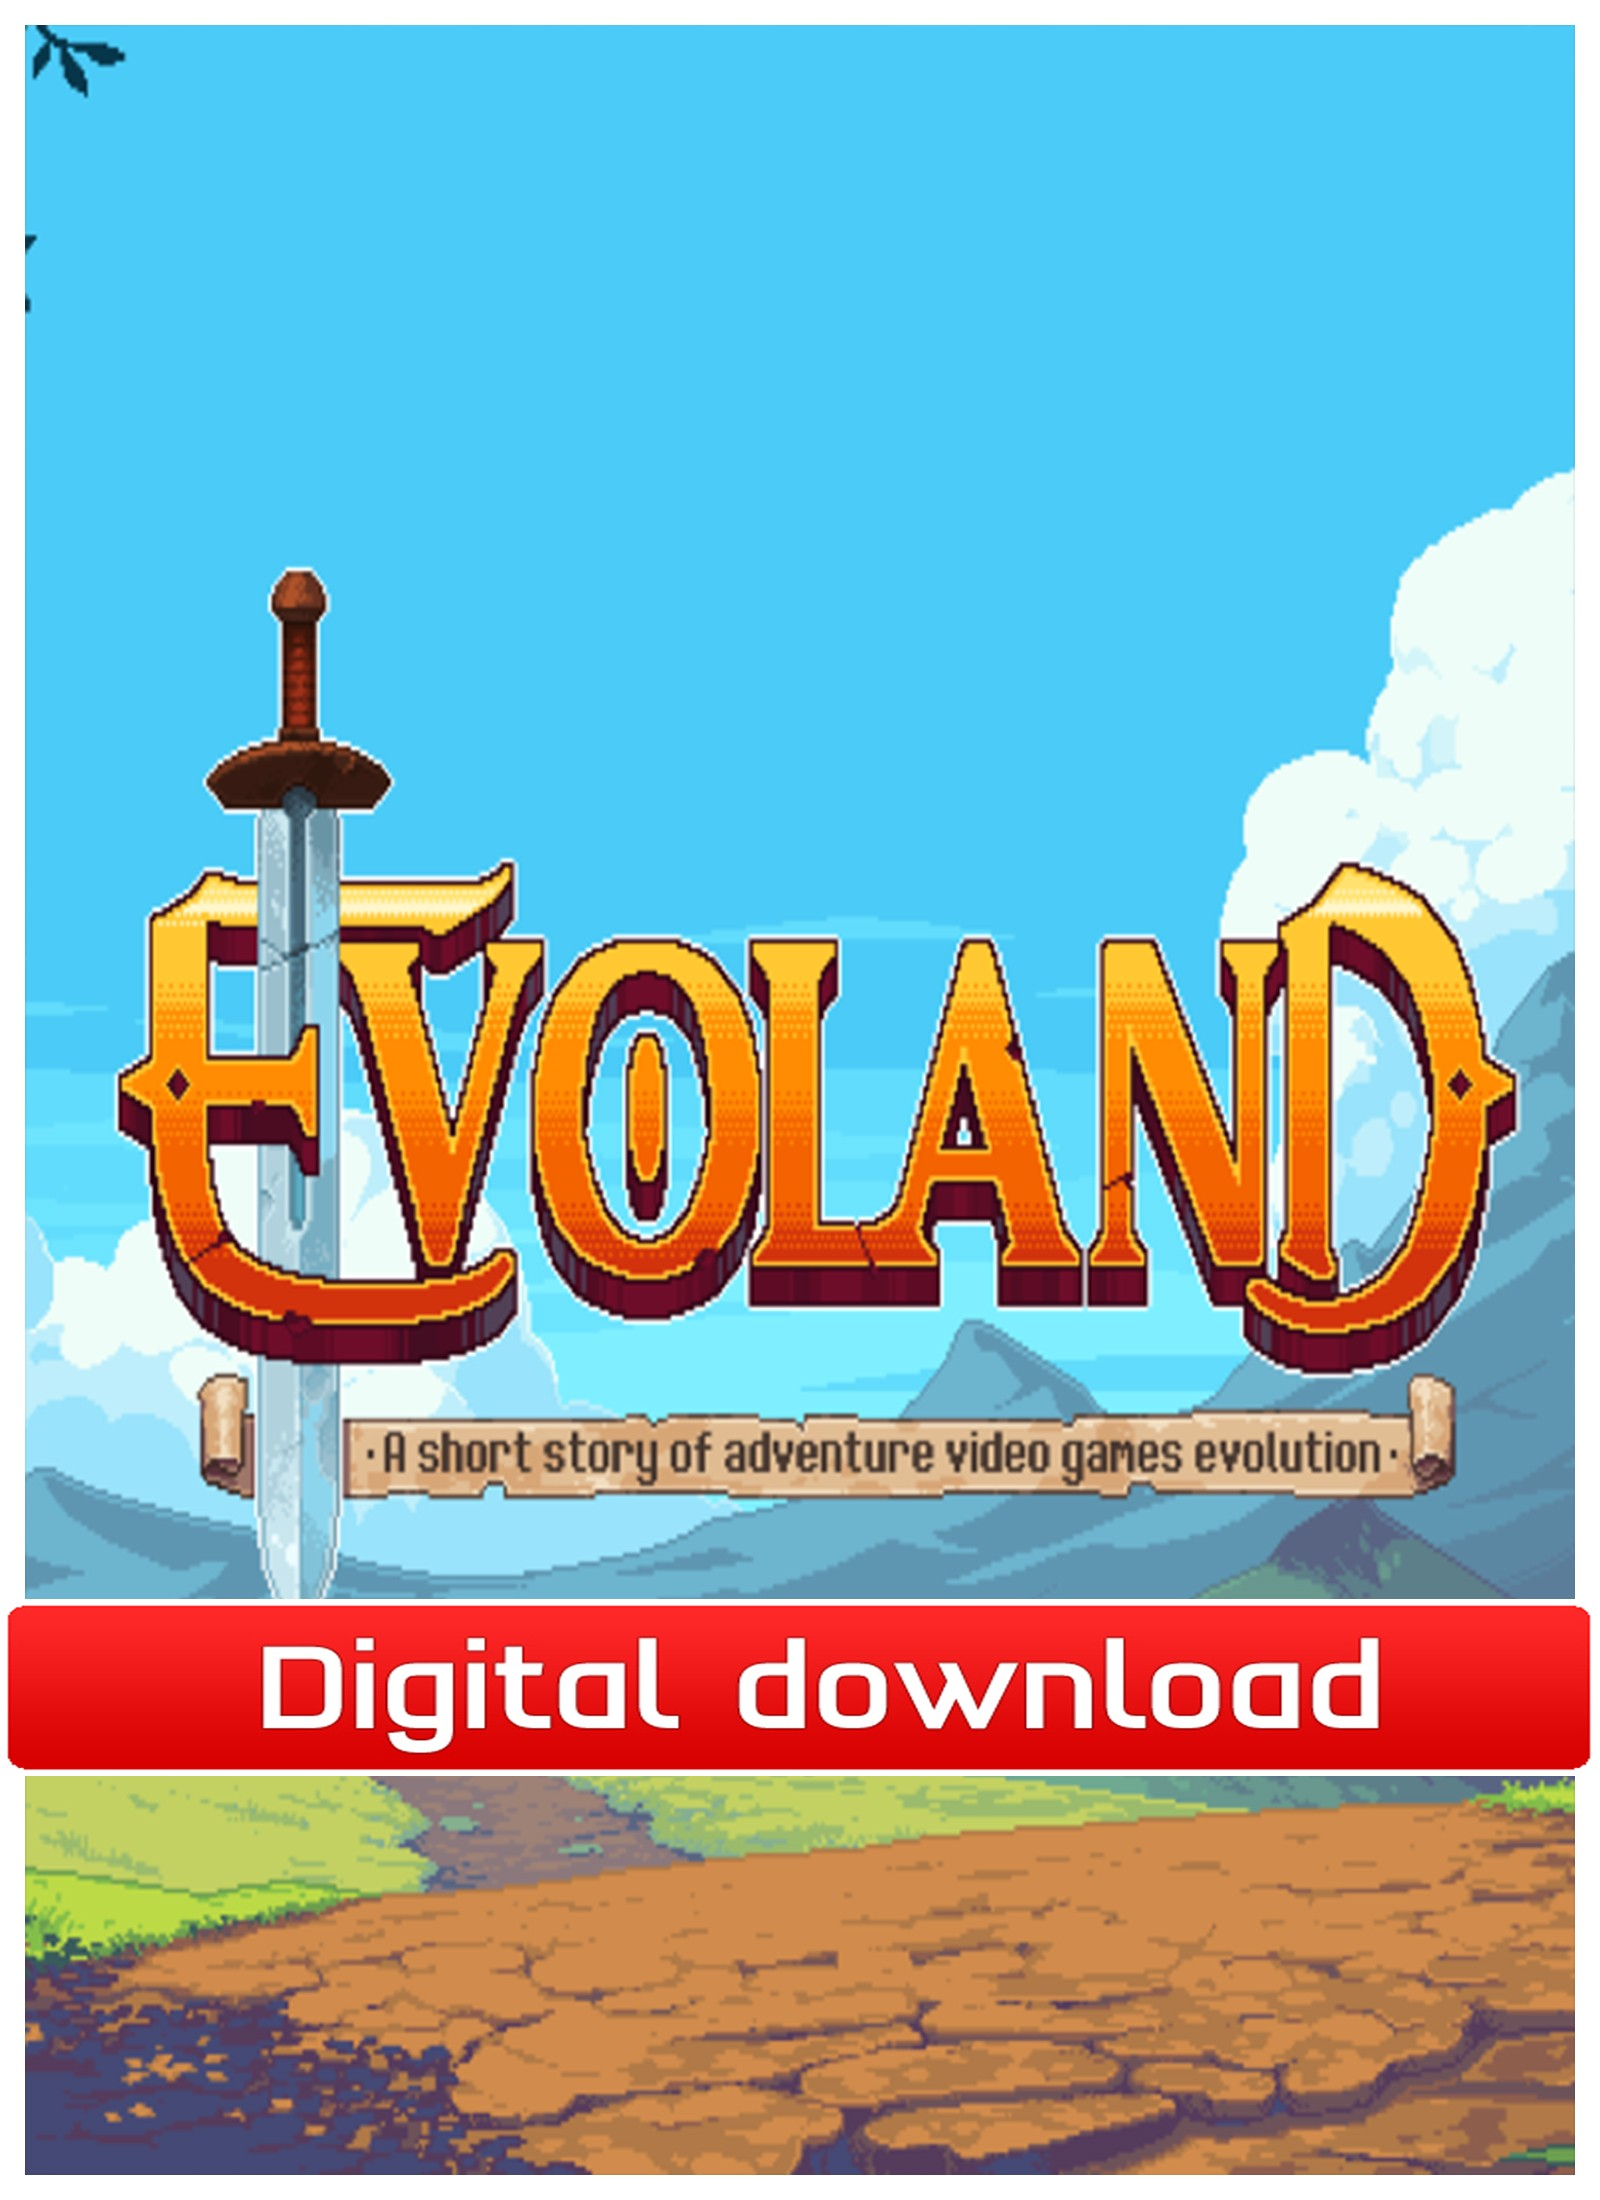 36679 : Evoland (PC nedlastning)